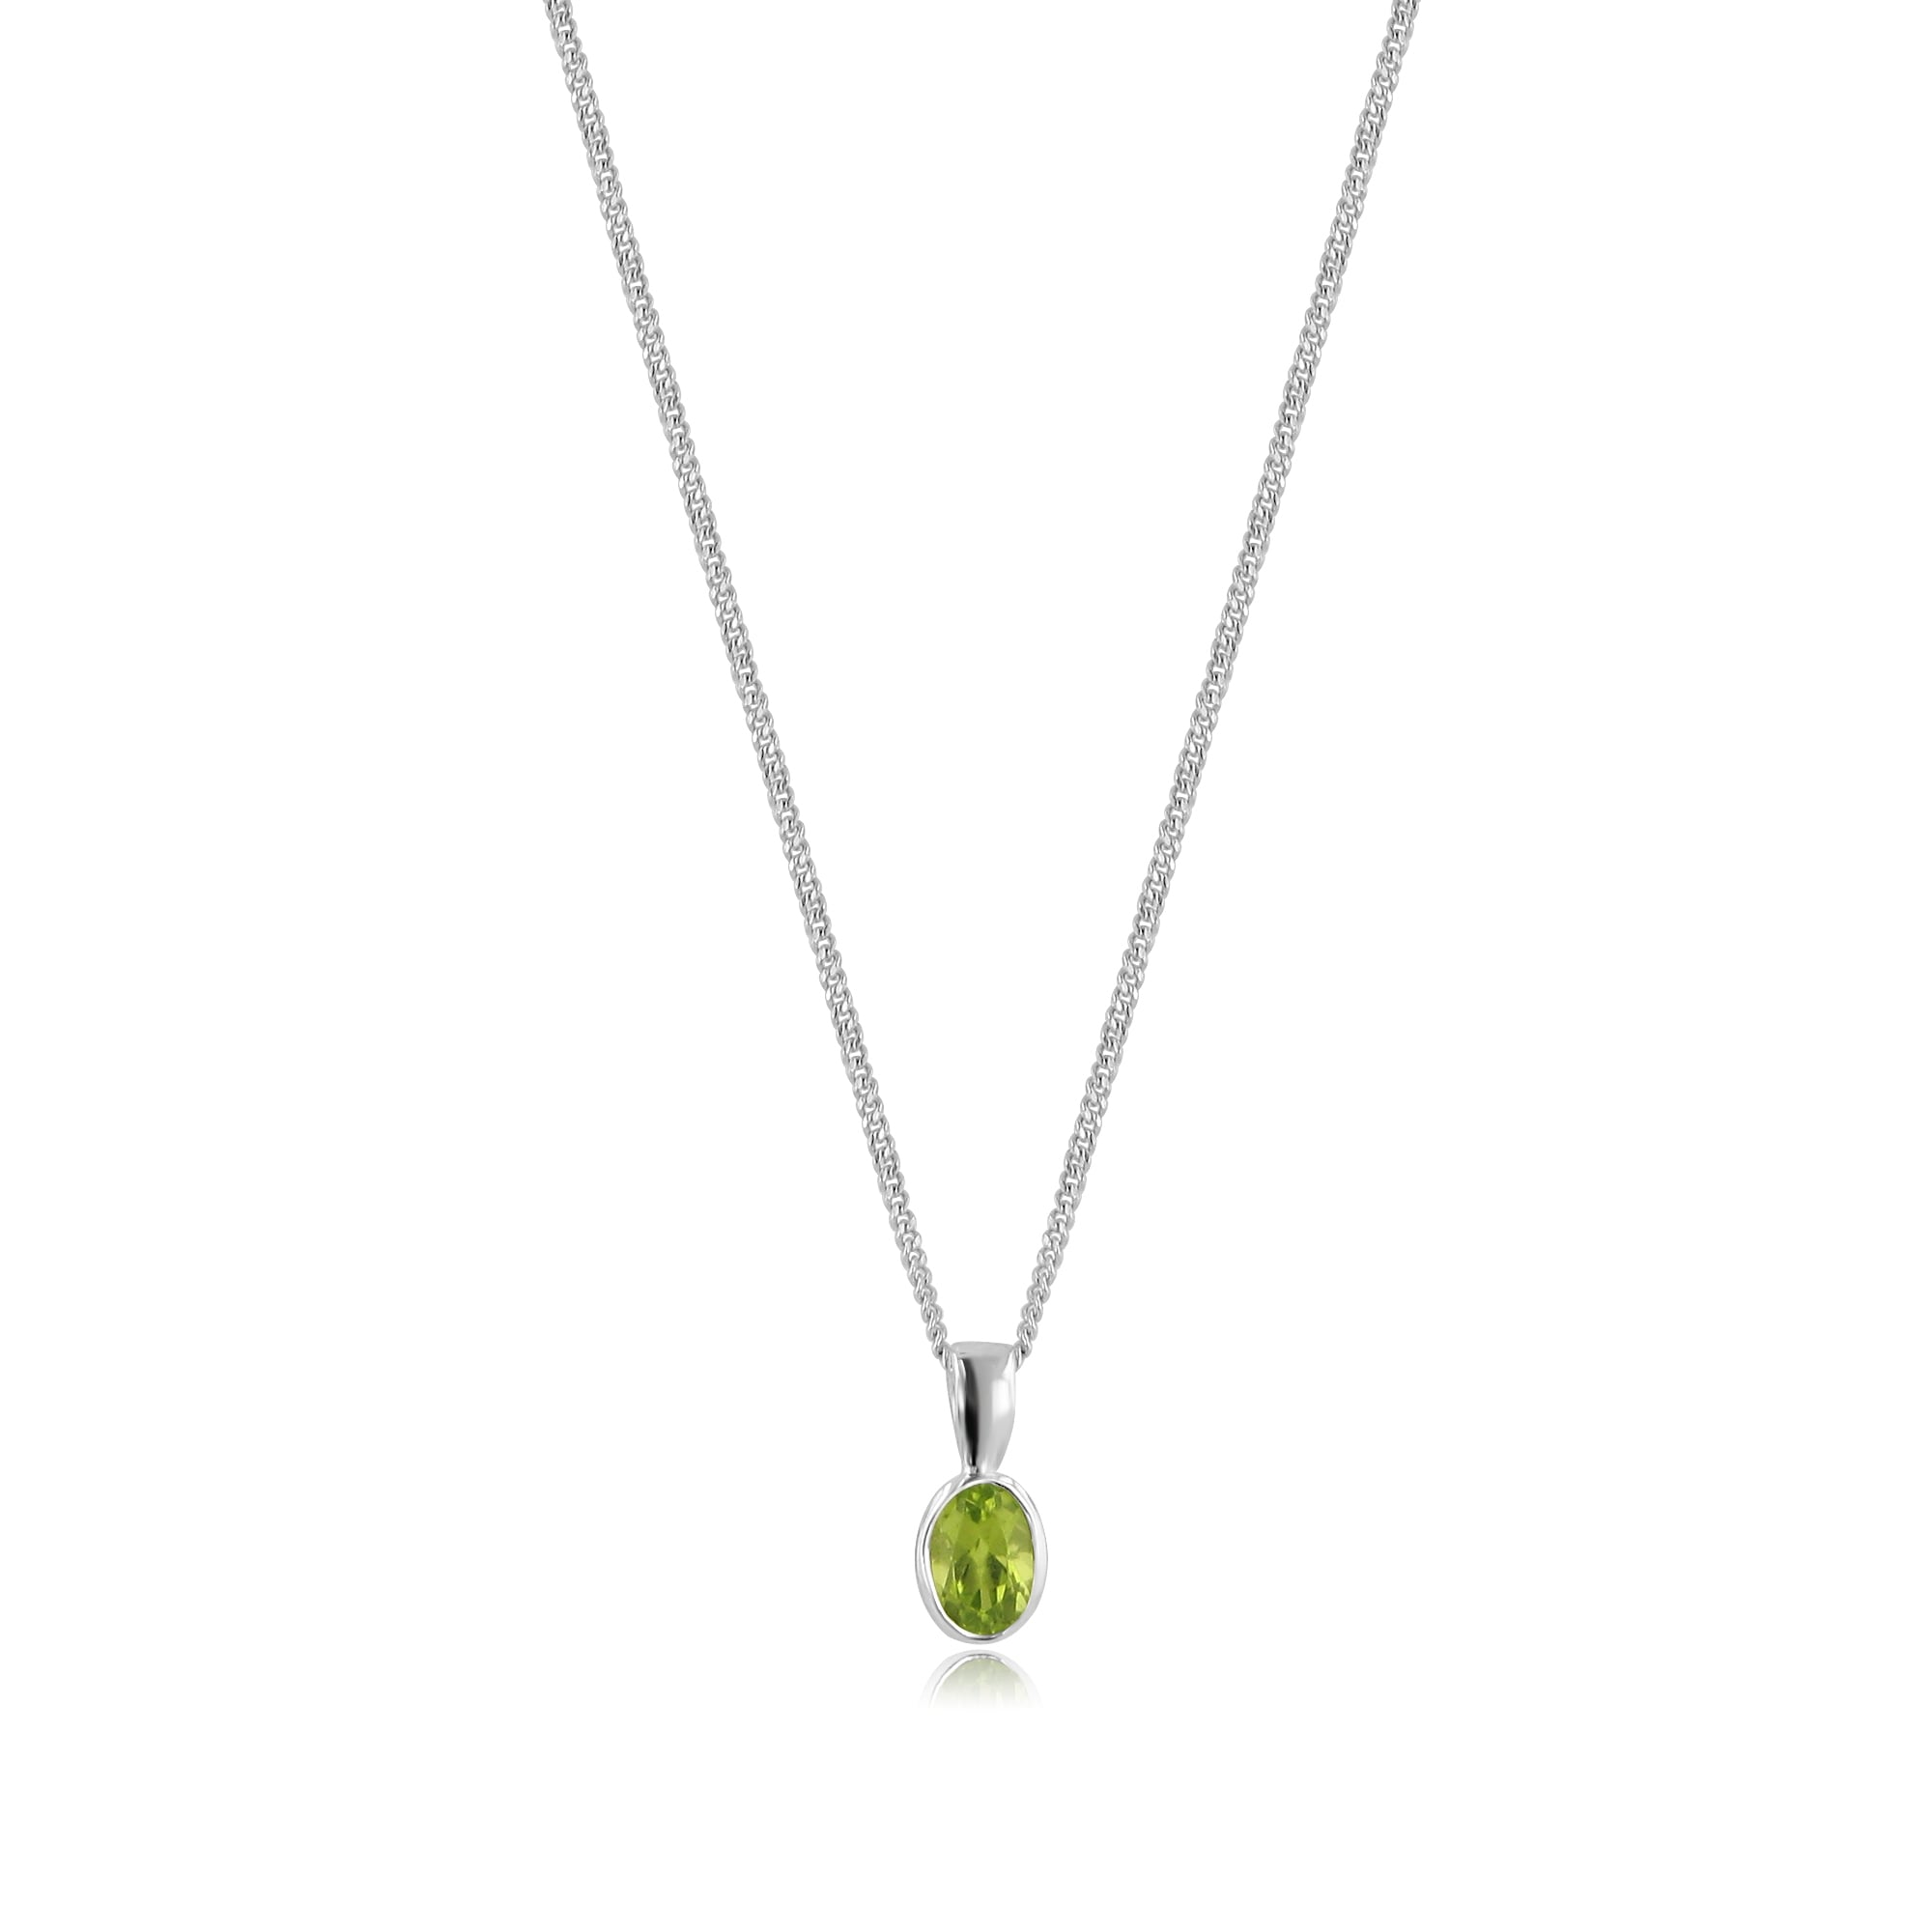 Oval peridot necklace in 9ct white gold oval peridot necklace in 9ct white gold pw3678 cw272 aloadofball Images